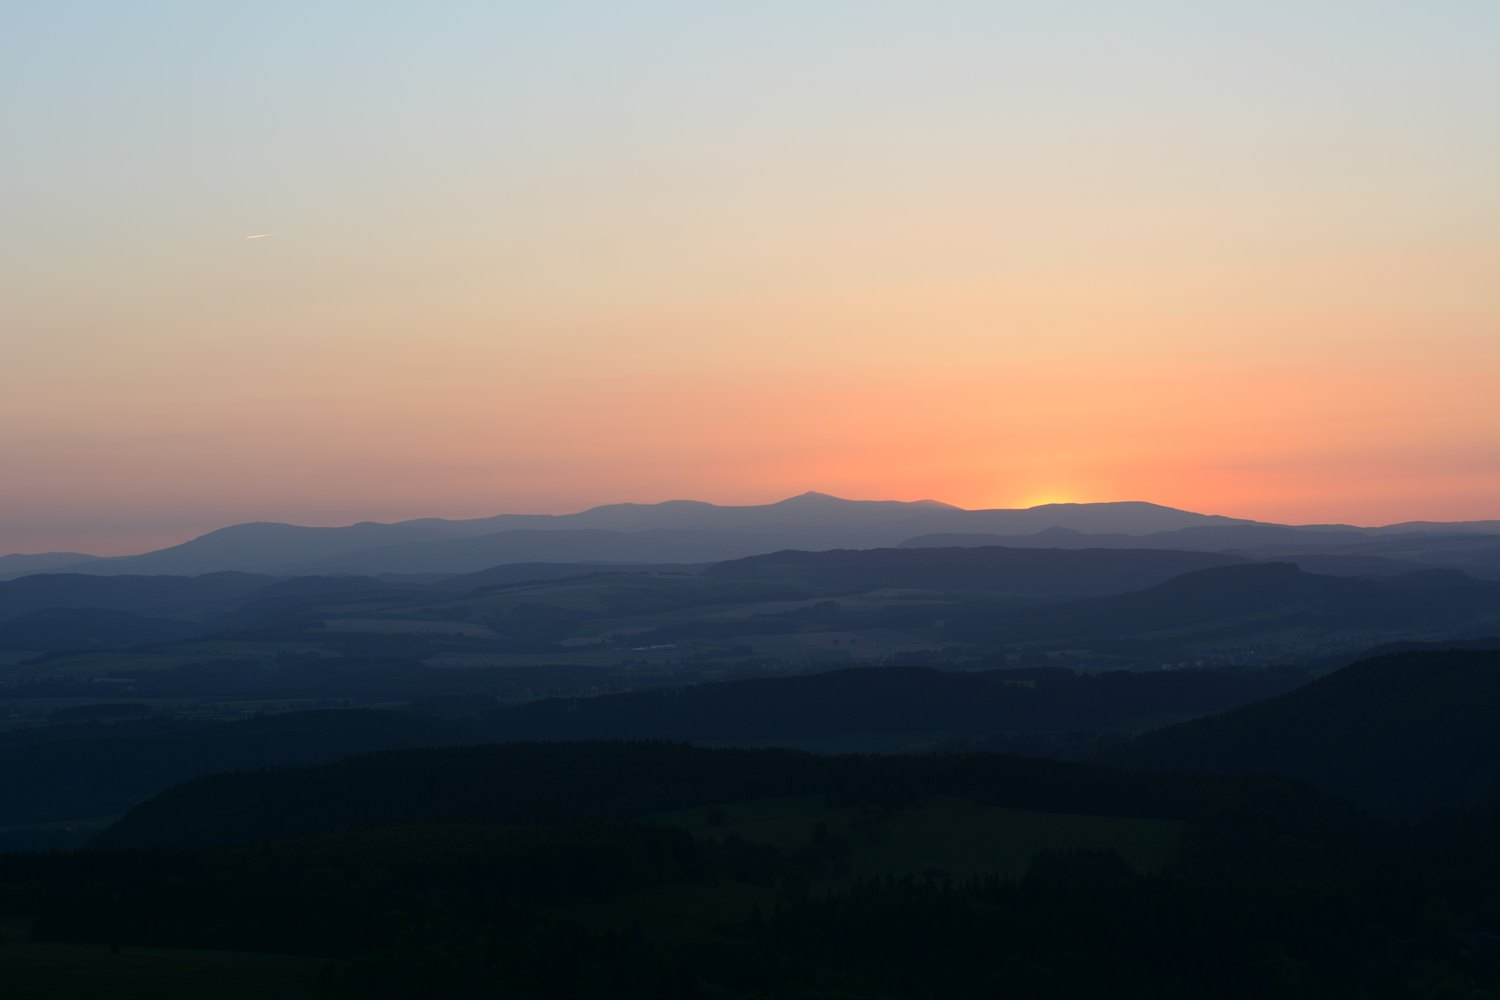 Góry Stołowe polish national parks mountains in poland near germany sunset over table mountains